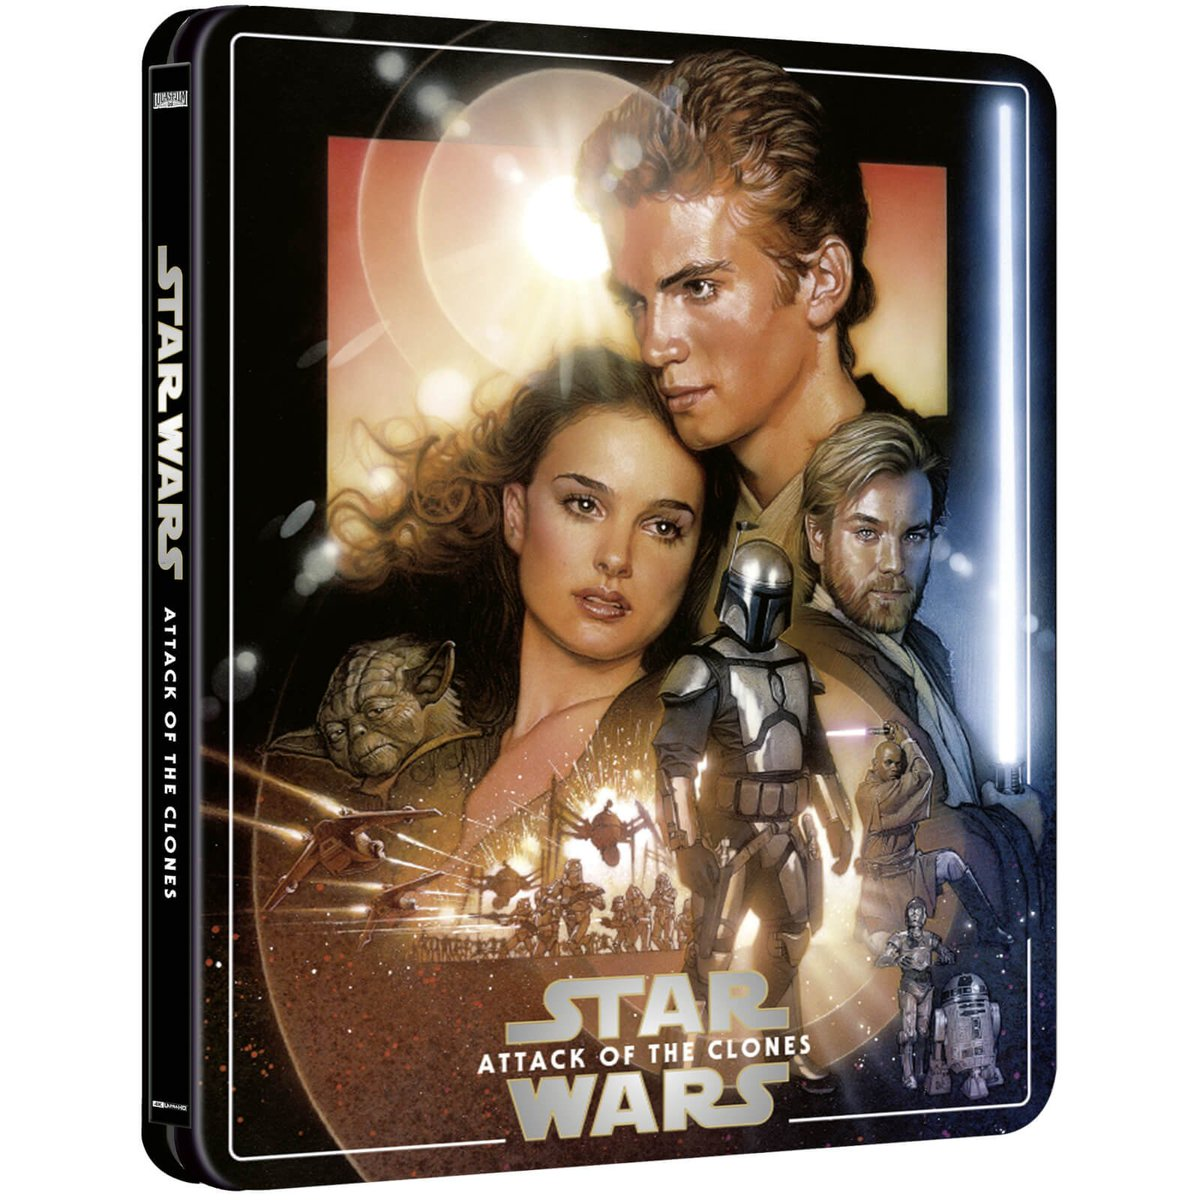 Ultra Hd Blu Ray On Twitter Star Wars Episode Iii Revenge Of The Sith 4k Ultra Hd Blu Ray Steelbook Edition 3 Discs Including Uhd Bd Https T Co U0qqddveux Https T Co Eg3qnlspyu